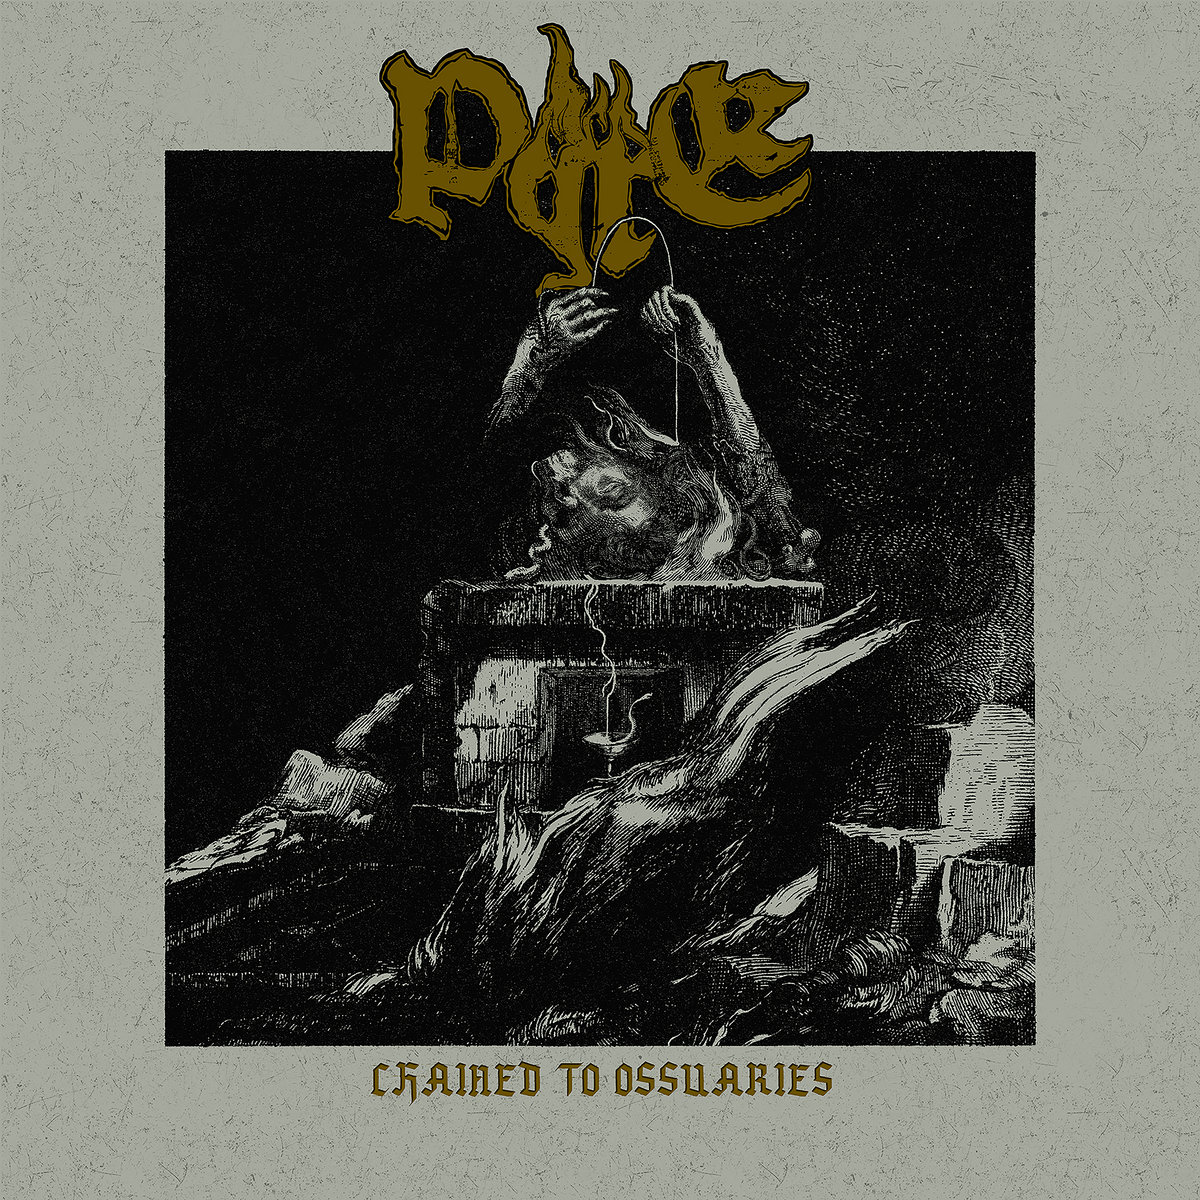 Pyre – Chained to ossuaries